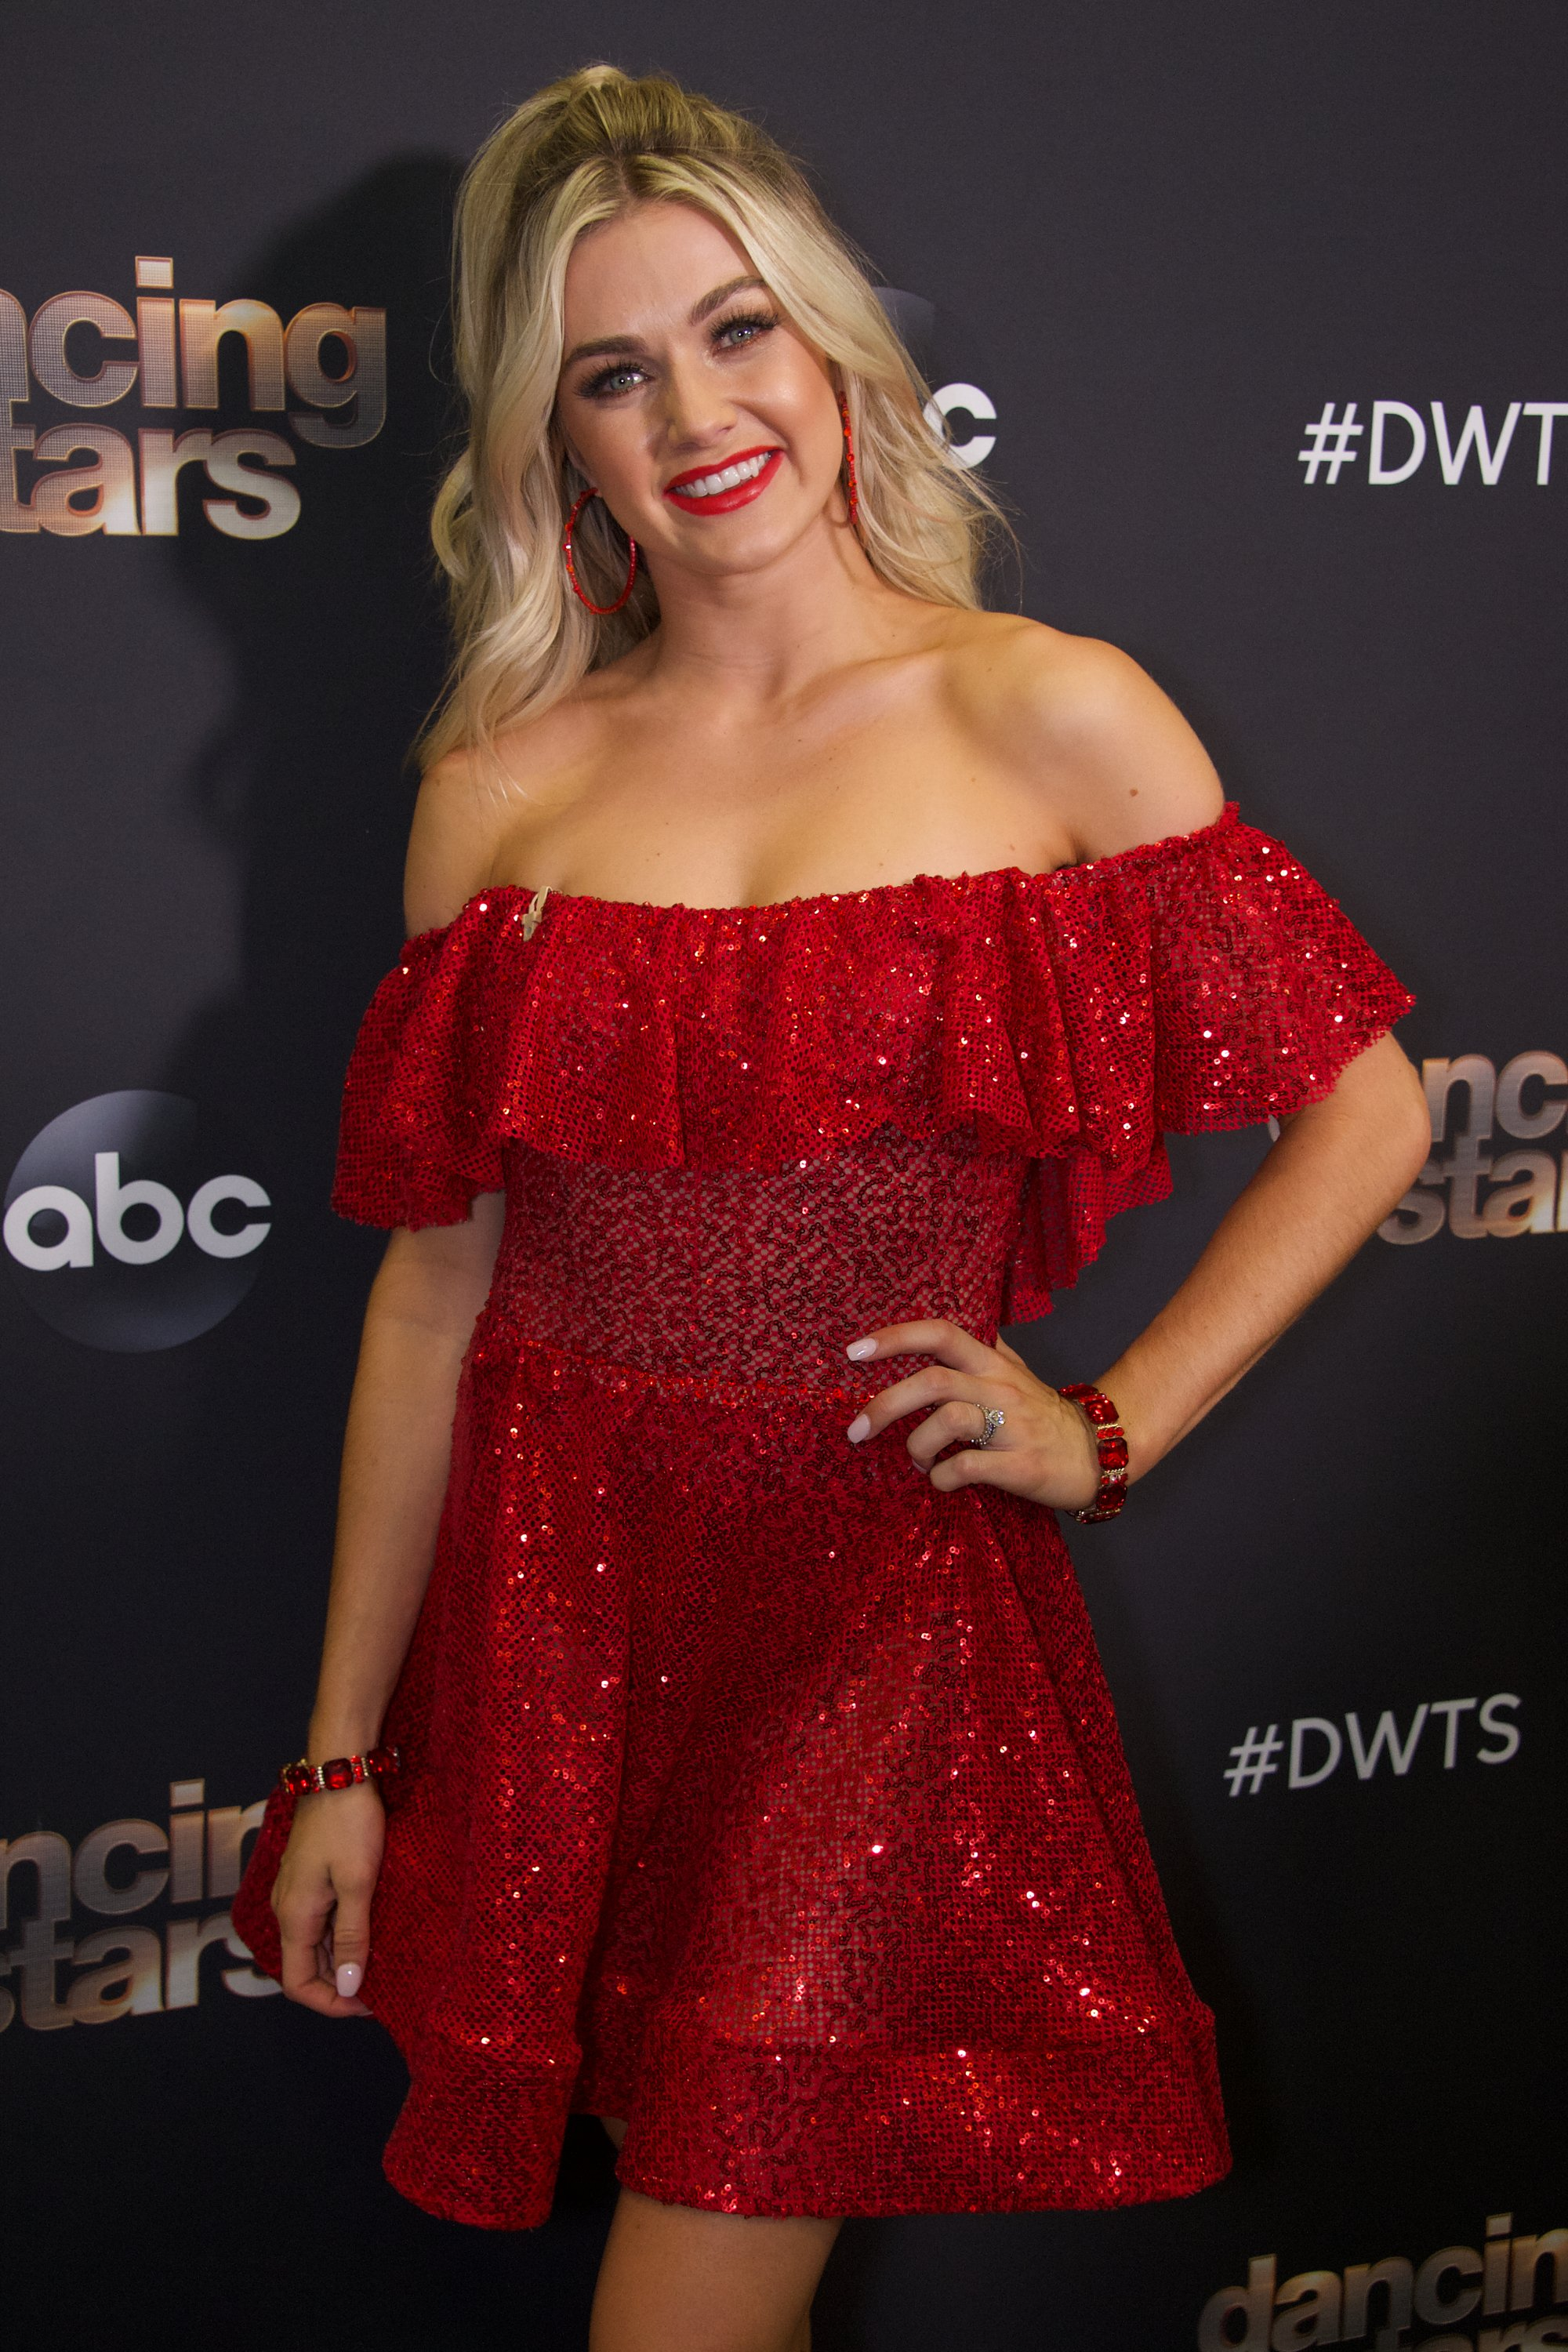 """Lindsay Arnold strikes a pose during the third week of the 2019 season of """"Dancing with the Stars,"""" on September 30 